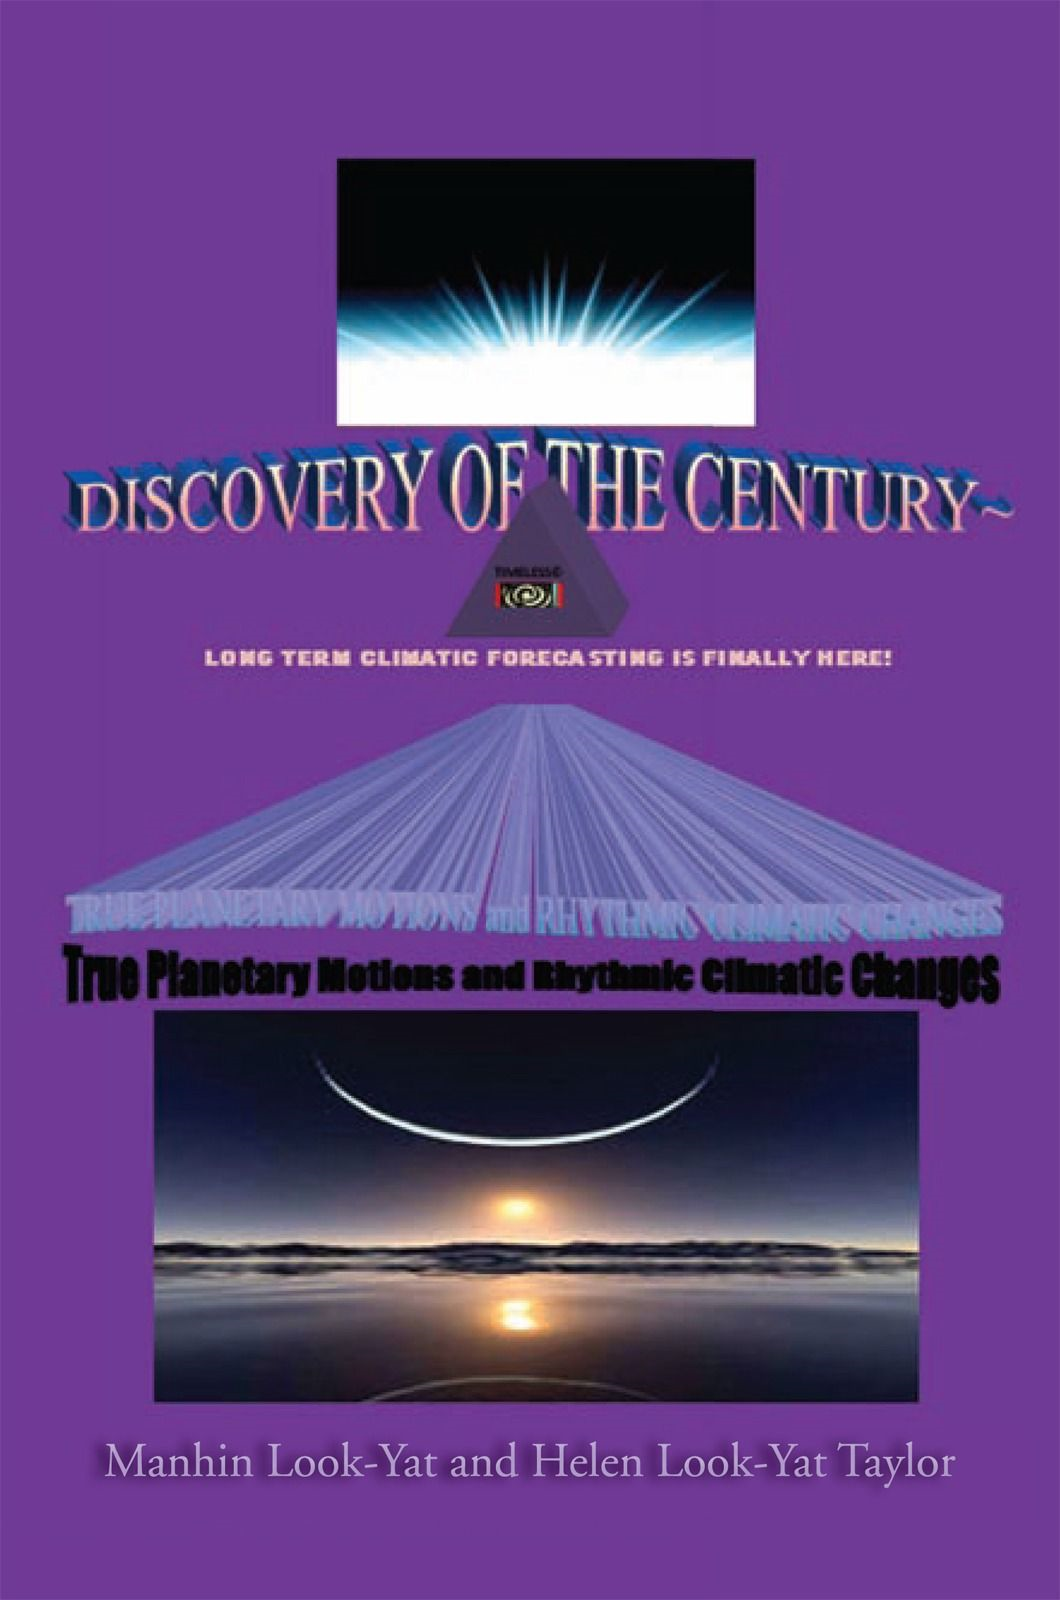 TRUE PLANETARY MOTIONS AND RHYTHMIC CLIMATIC CHANGES